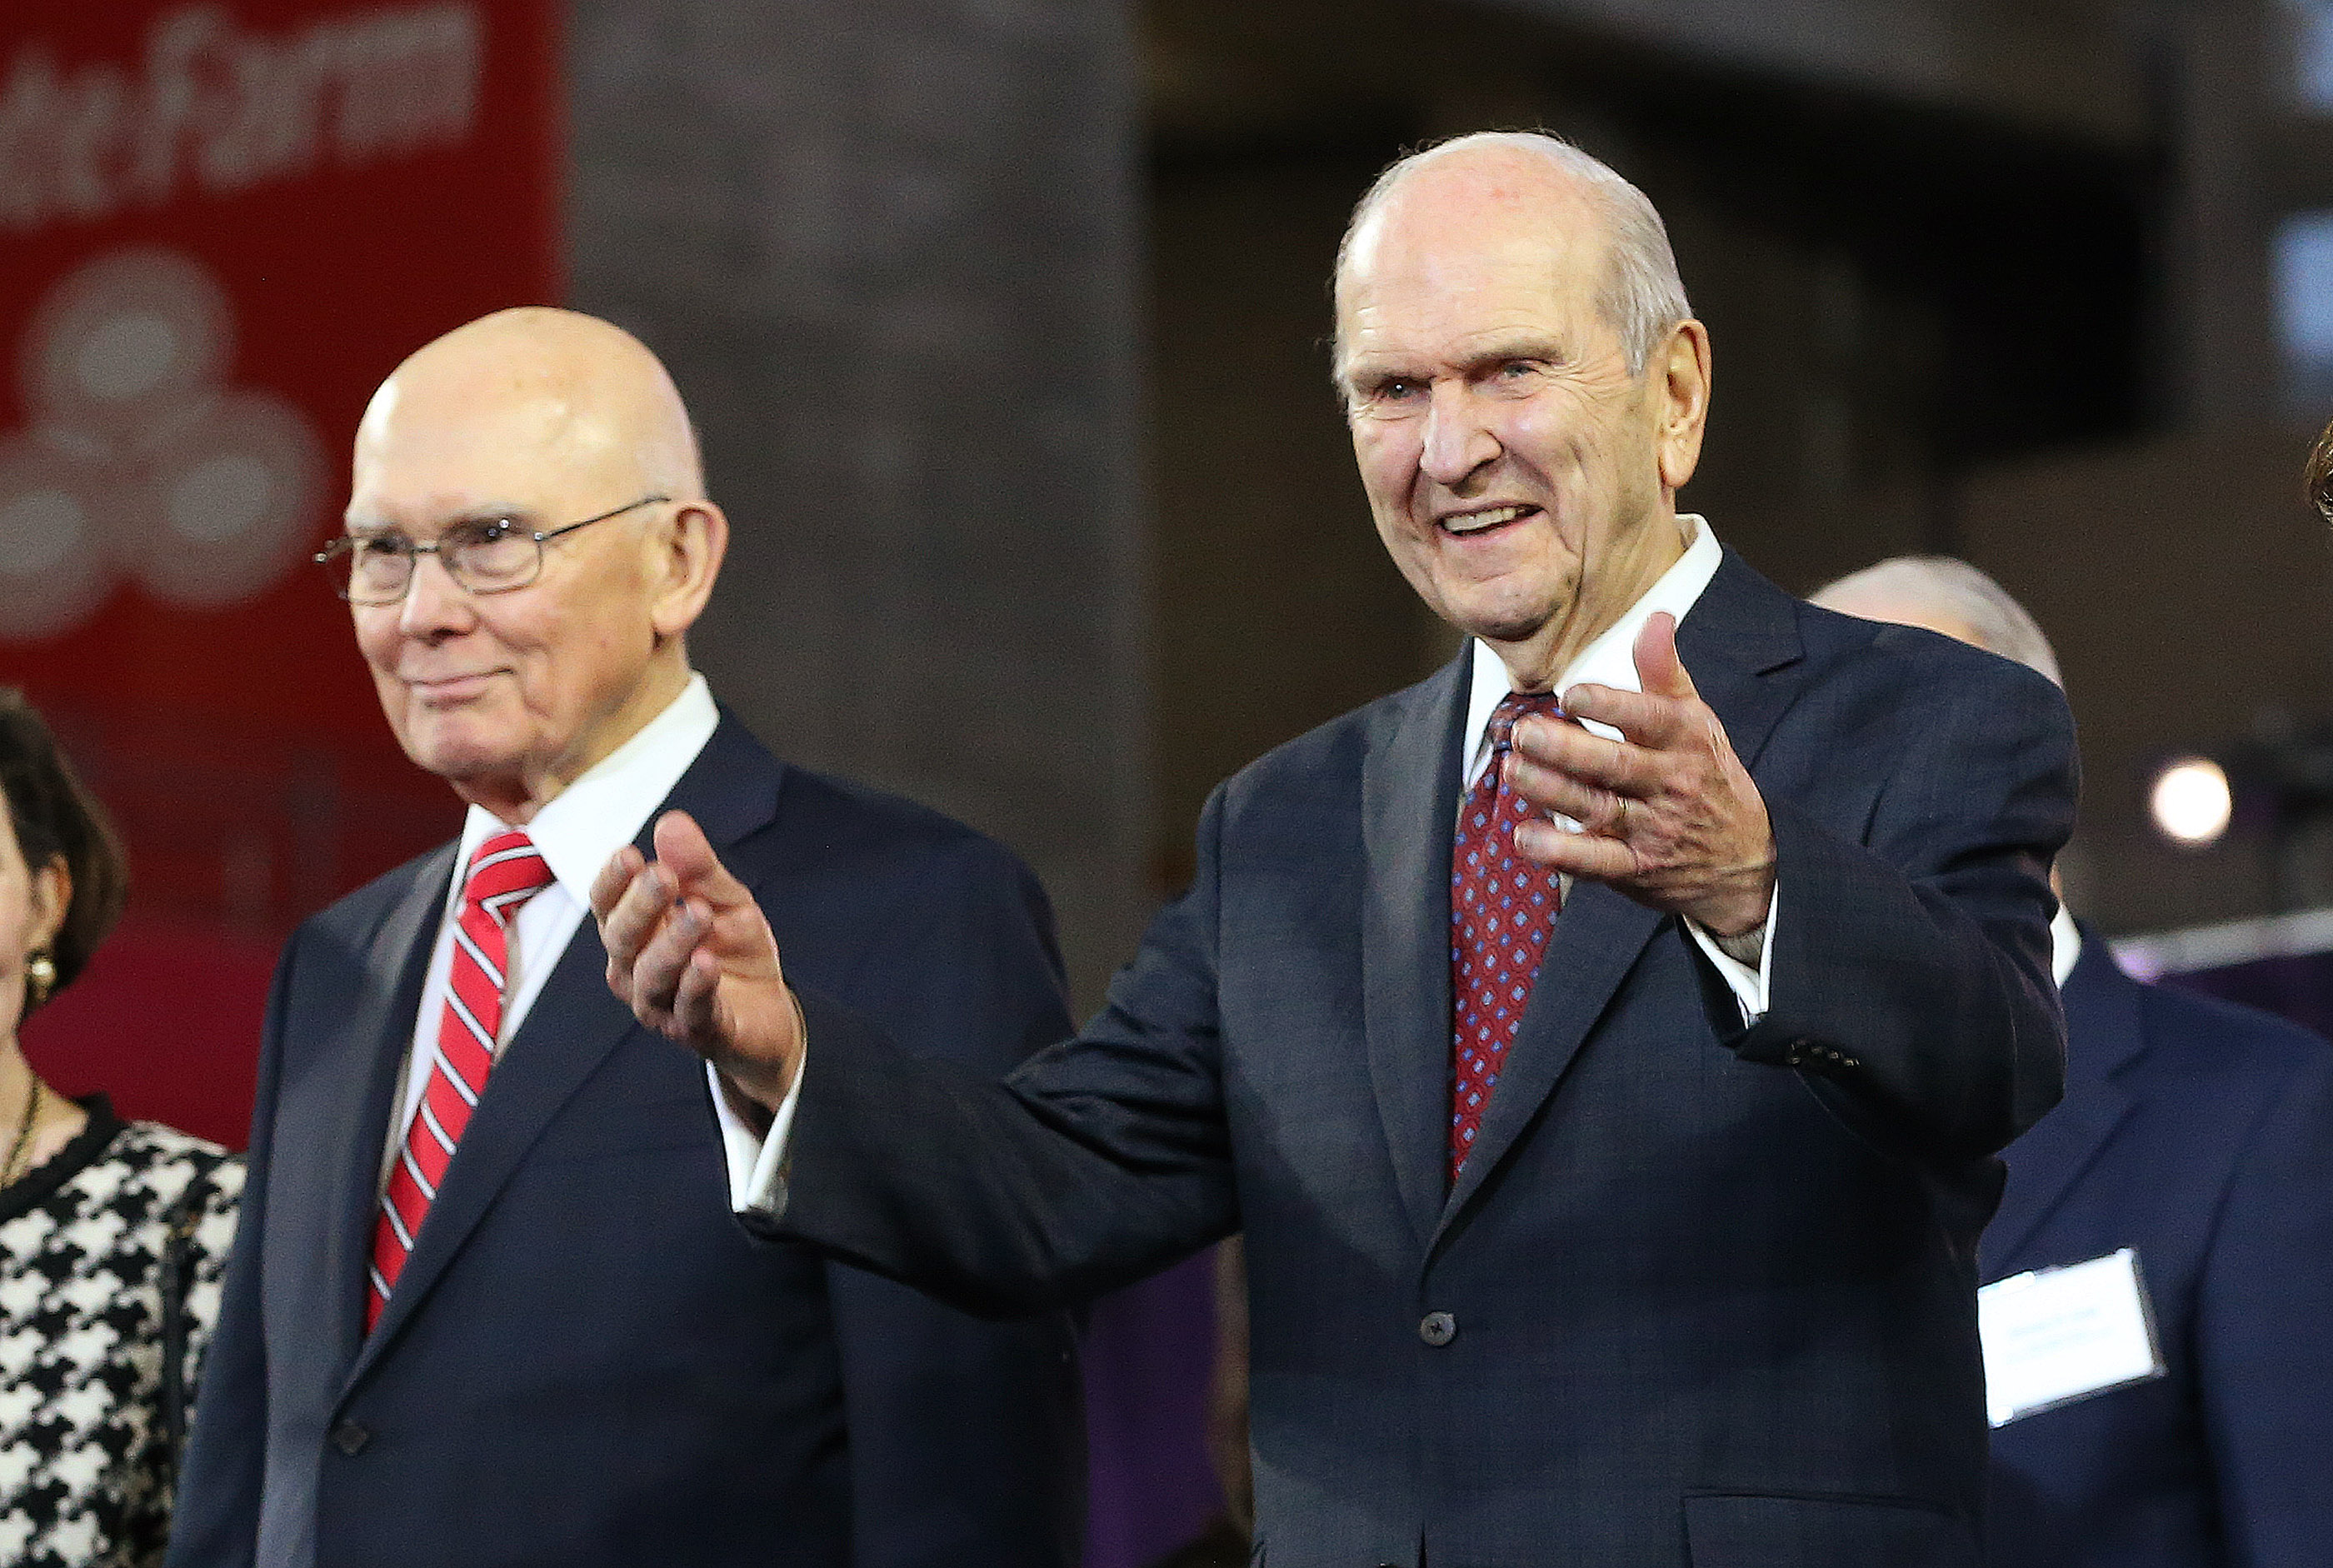 President Russell M. Nelson of The Church of Jesus Christ of Latter-day Saints gestures to attendees at the State Farm Stadium in Phoenix on Sunday, Feb. 10, 2019. Nelson is accompanied by President Dallin H. Oaks, first counselor.